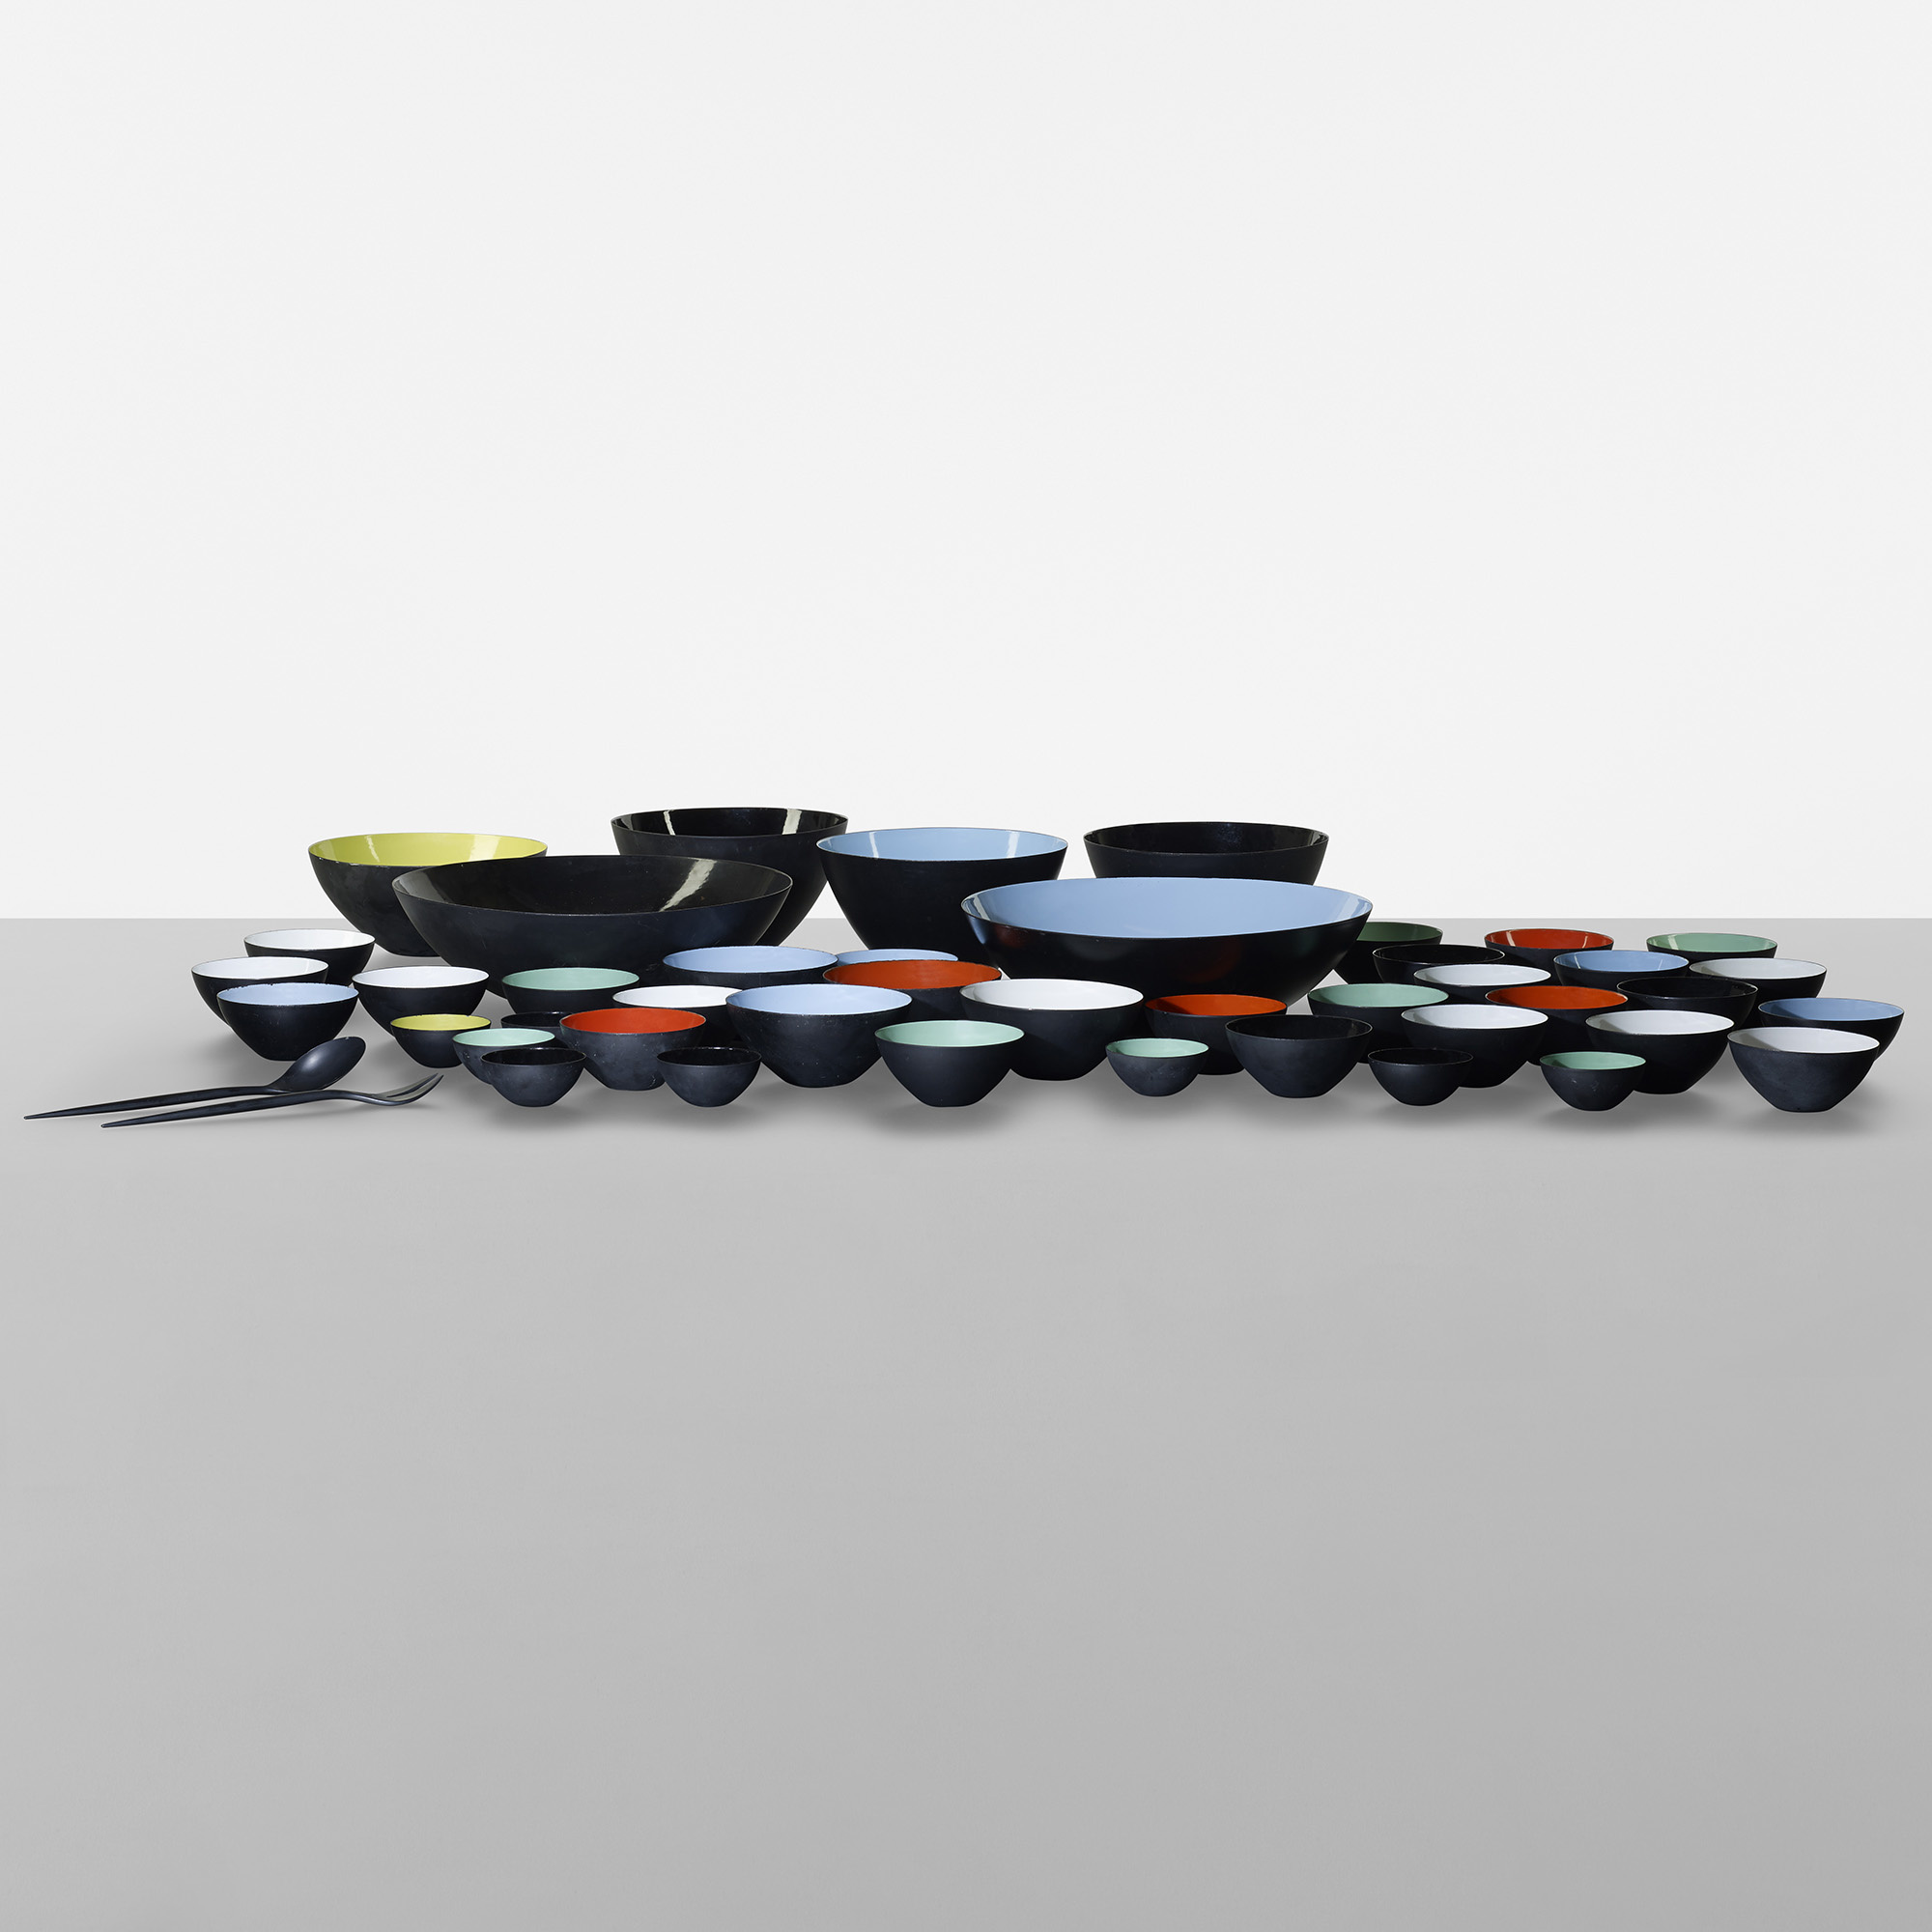 155: Herbert Krenchel / set of forty-three Krenit bowls with two serving utensils (2 of 4)